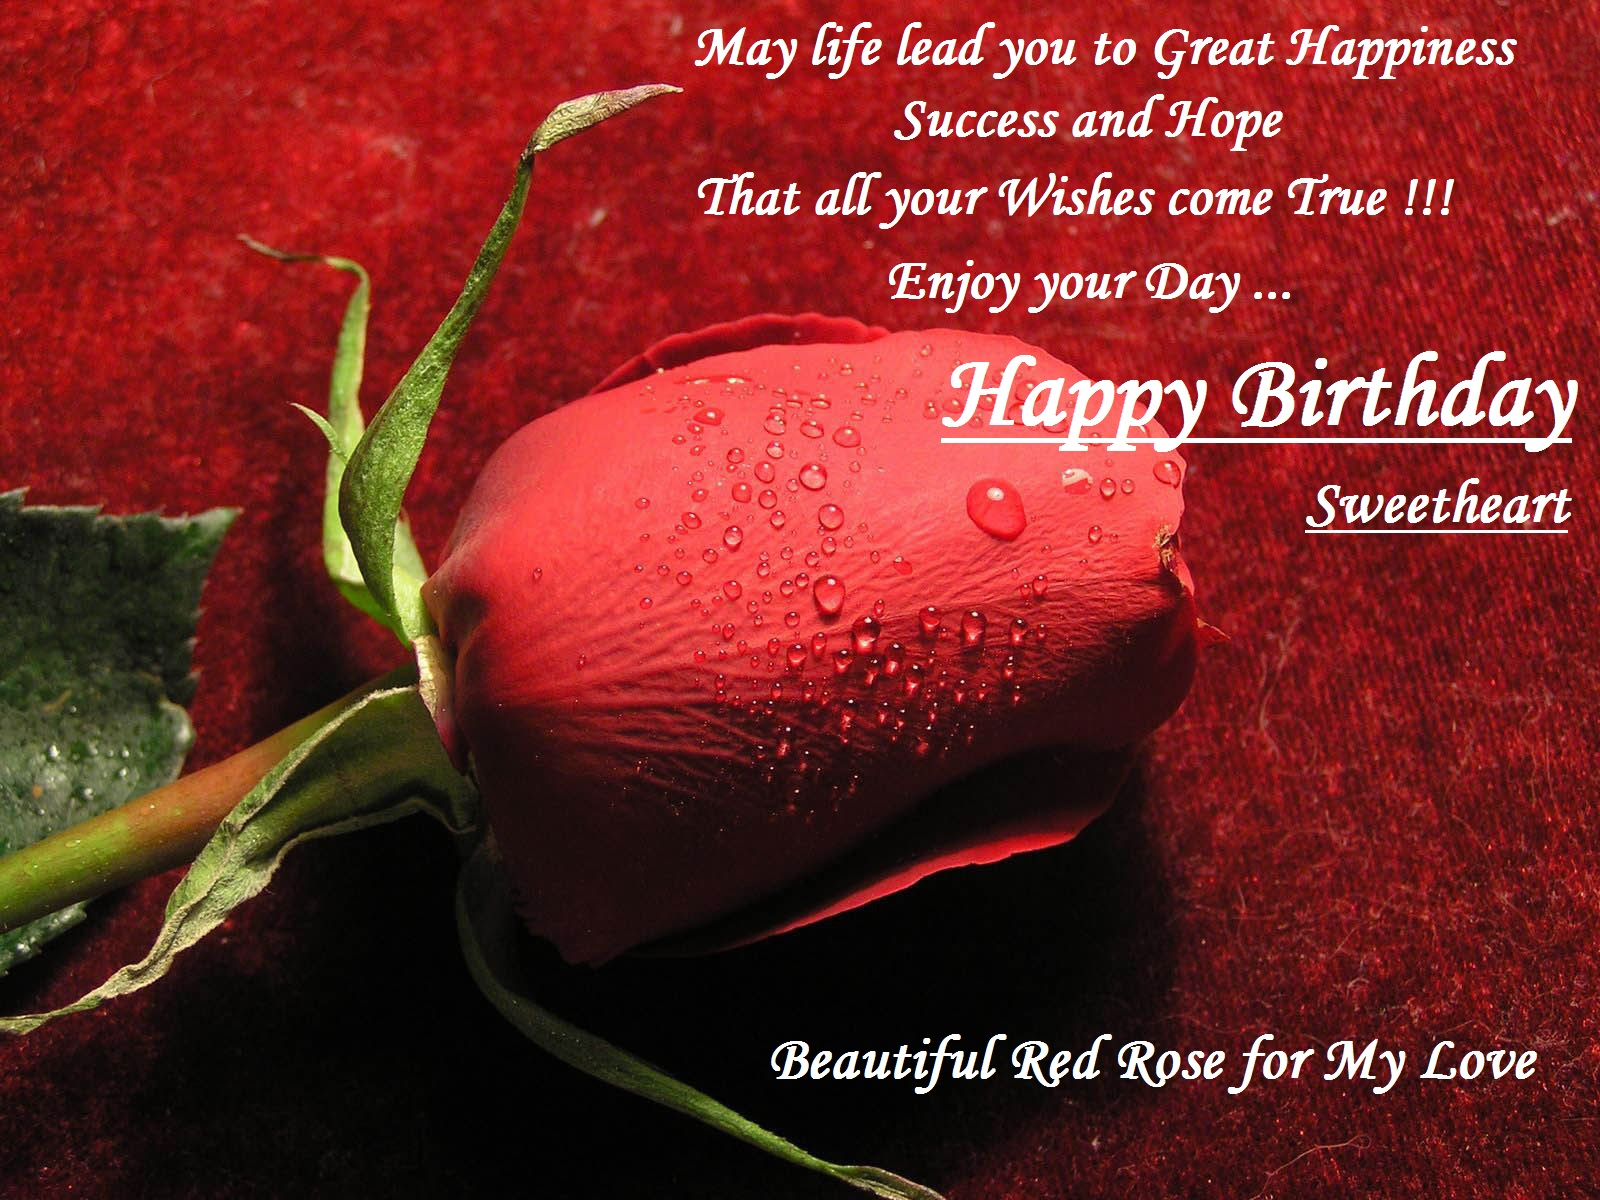 Advance Happy Birthday Wishes For Husband Advance Happy Birthday Wishes